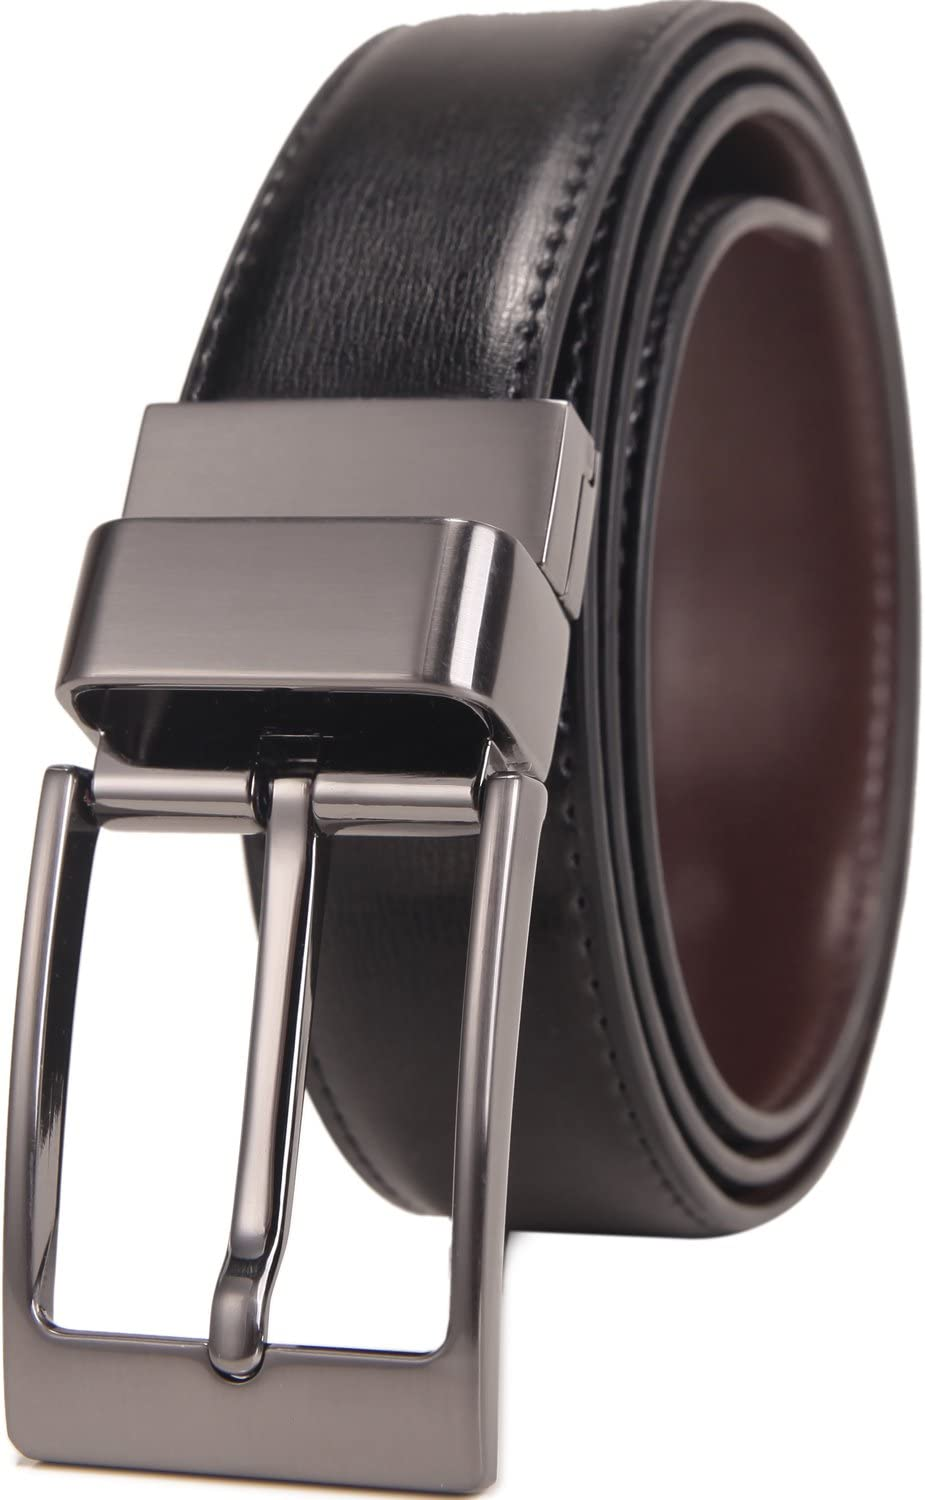 Nylon Rotated Buckle,26-28 Beltox Fine Mens Dress Belt Leather Reversible 1.25 Wide Rotated Buckle Gift Box